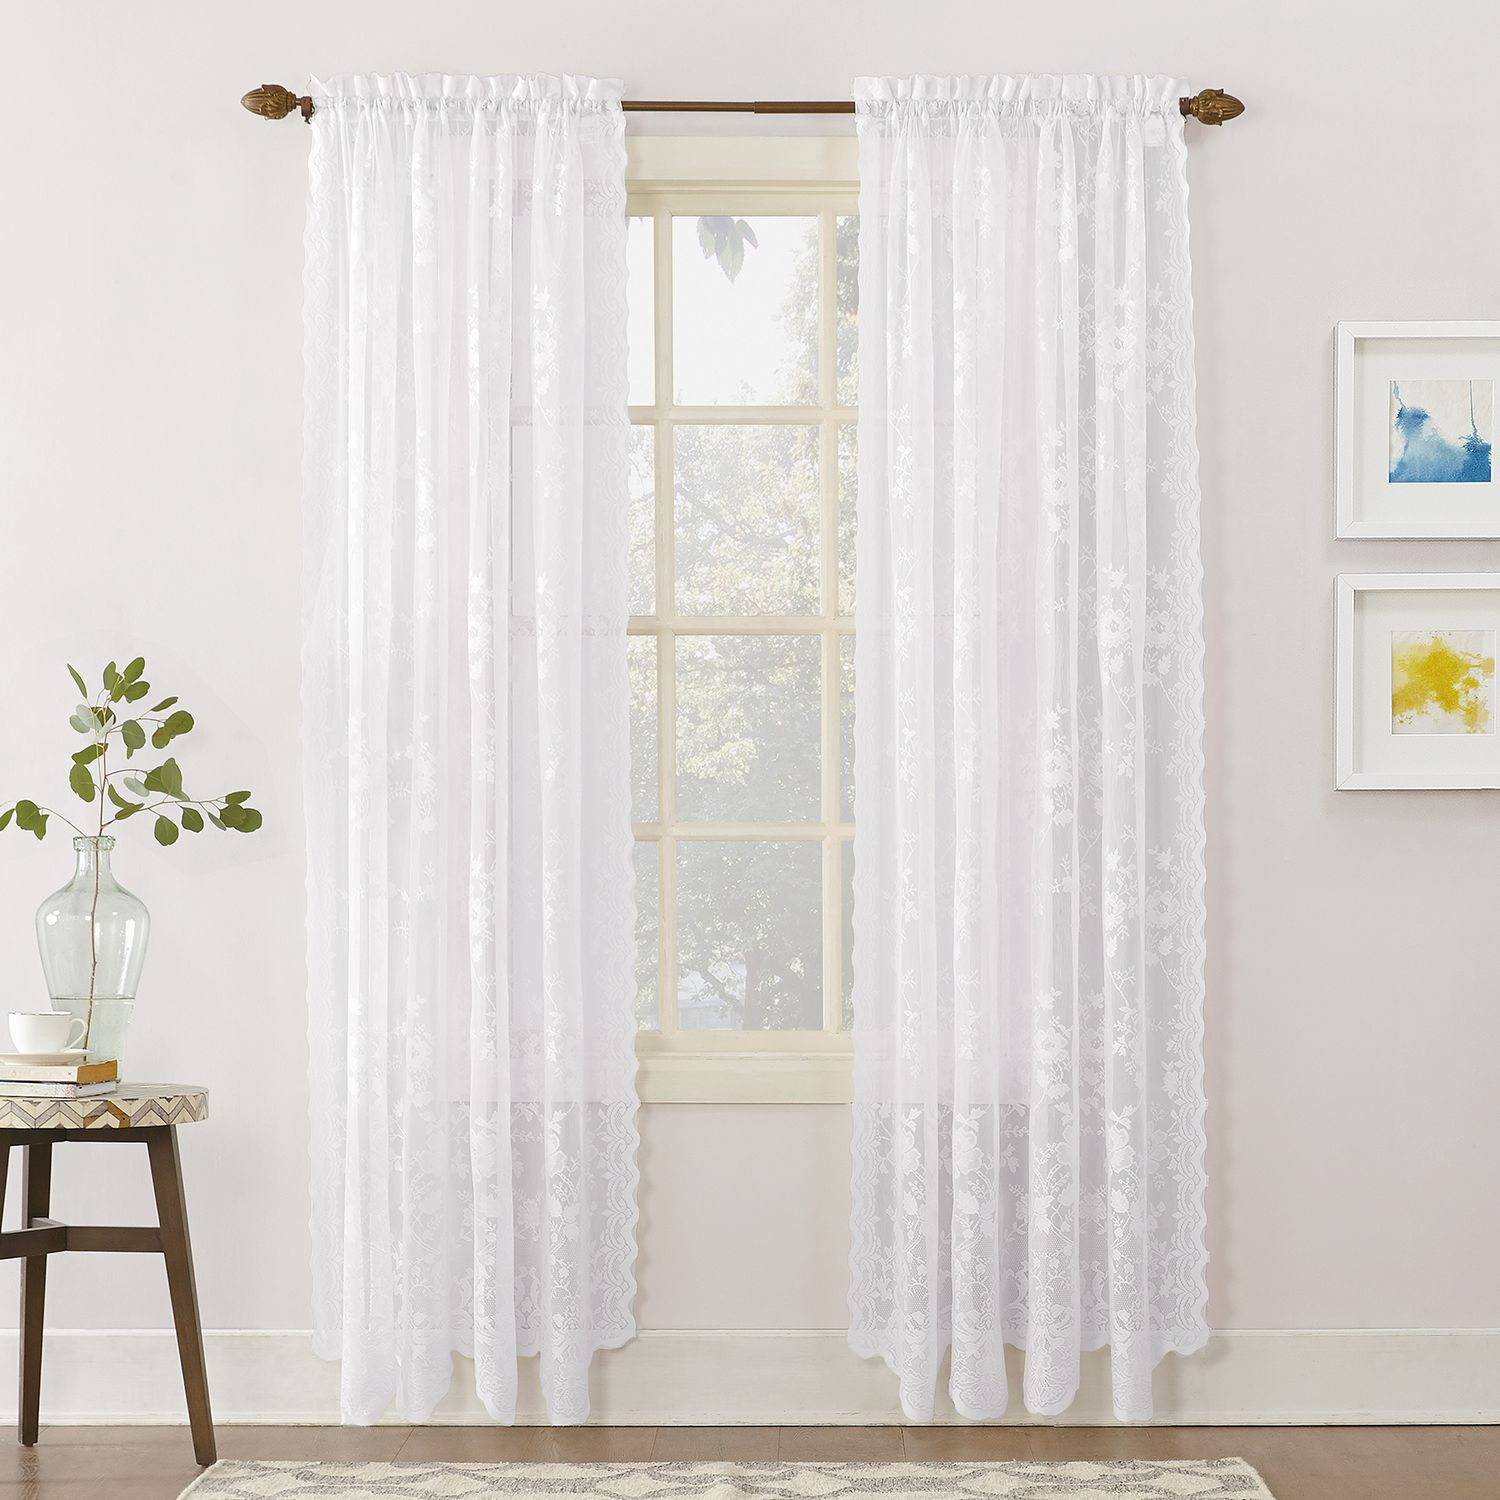 Etonnant No 918 1 Panel Alison Floral Lace Sheer Window Curtain